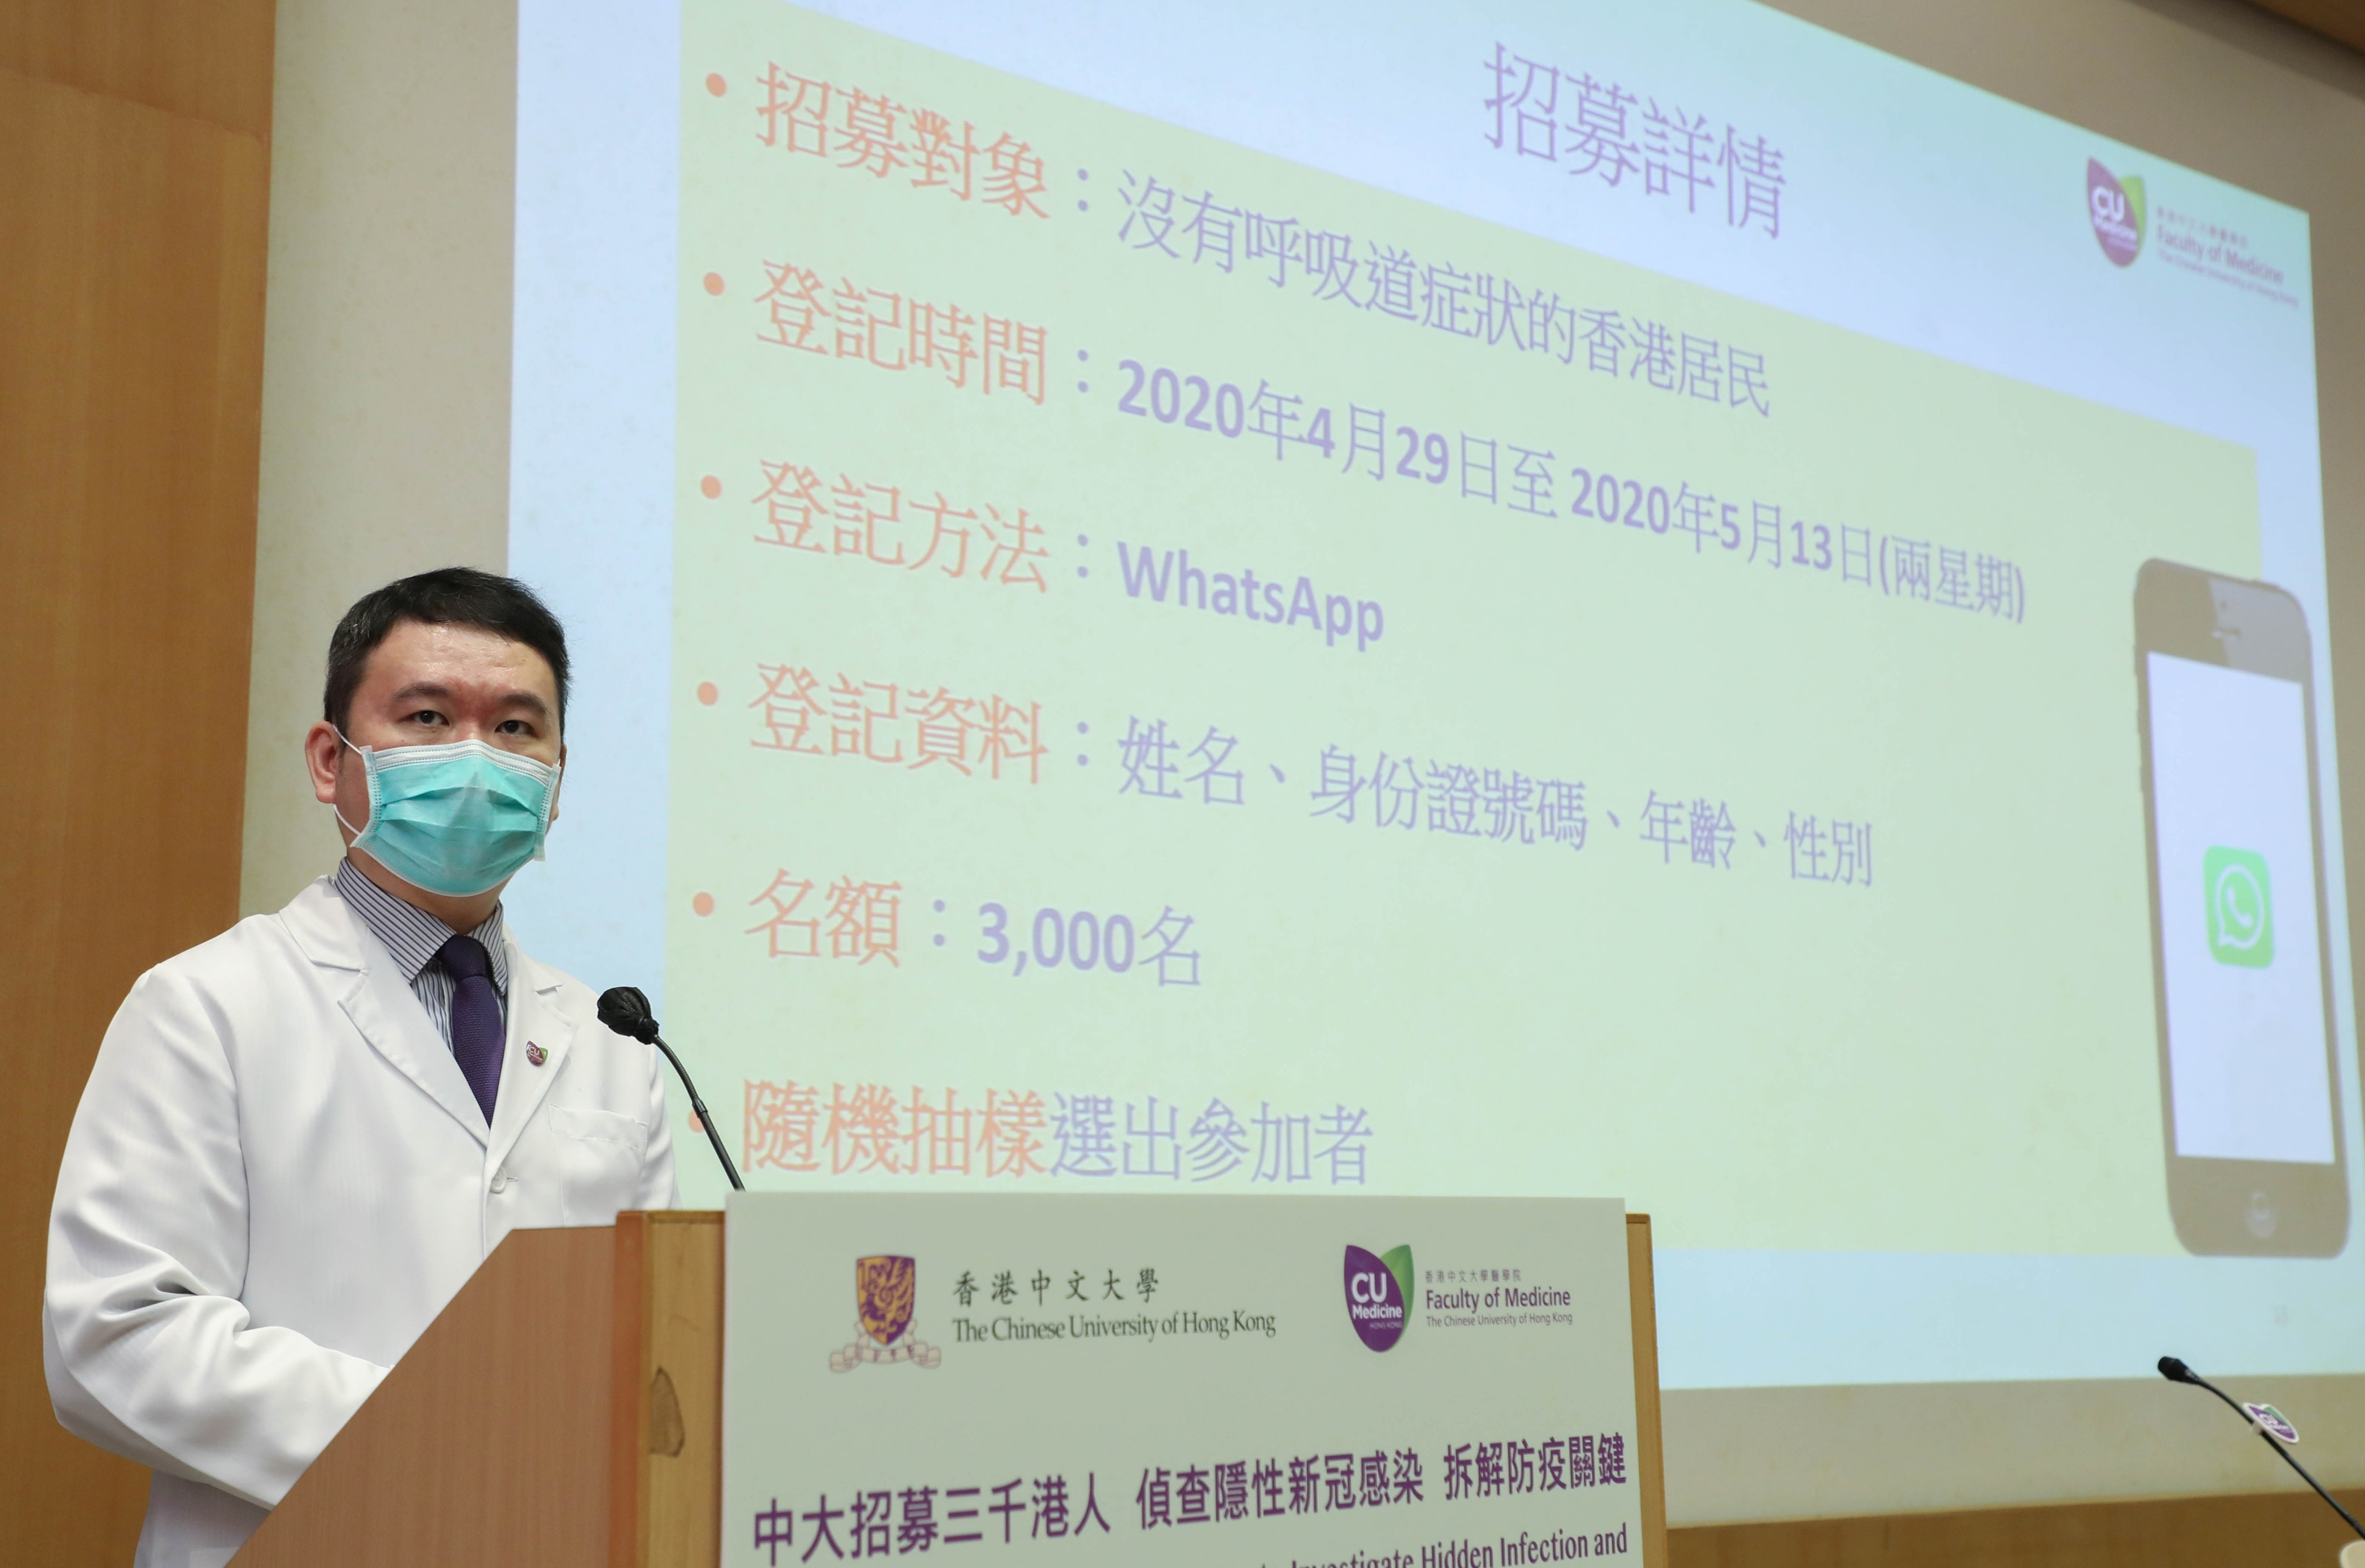 Professor Martin WONG says the team will take a series of hygiene and preventive measures to ensure providing a safe environment to conduct the testing.